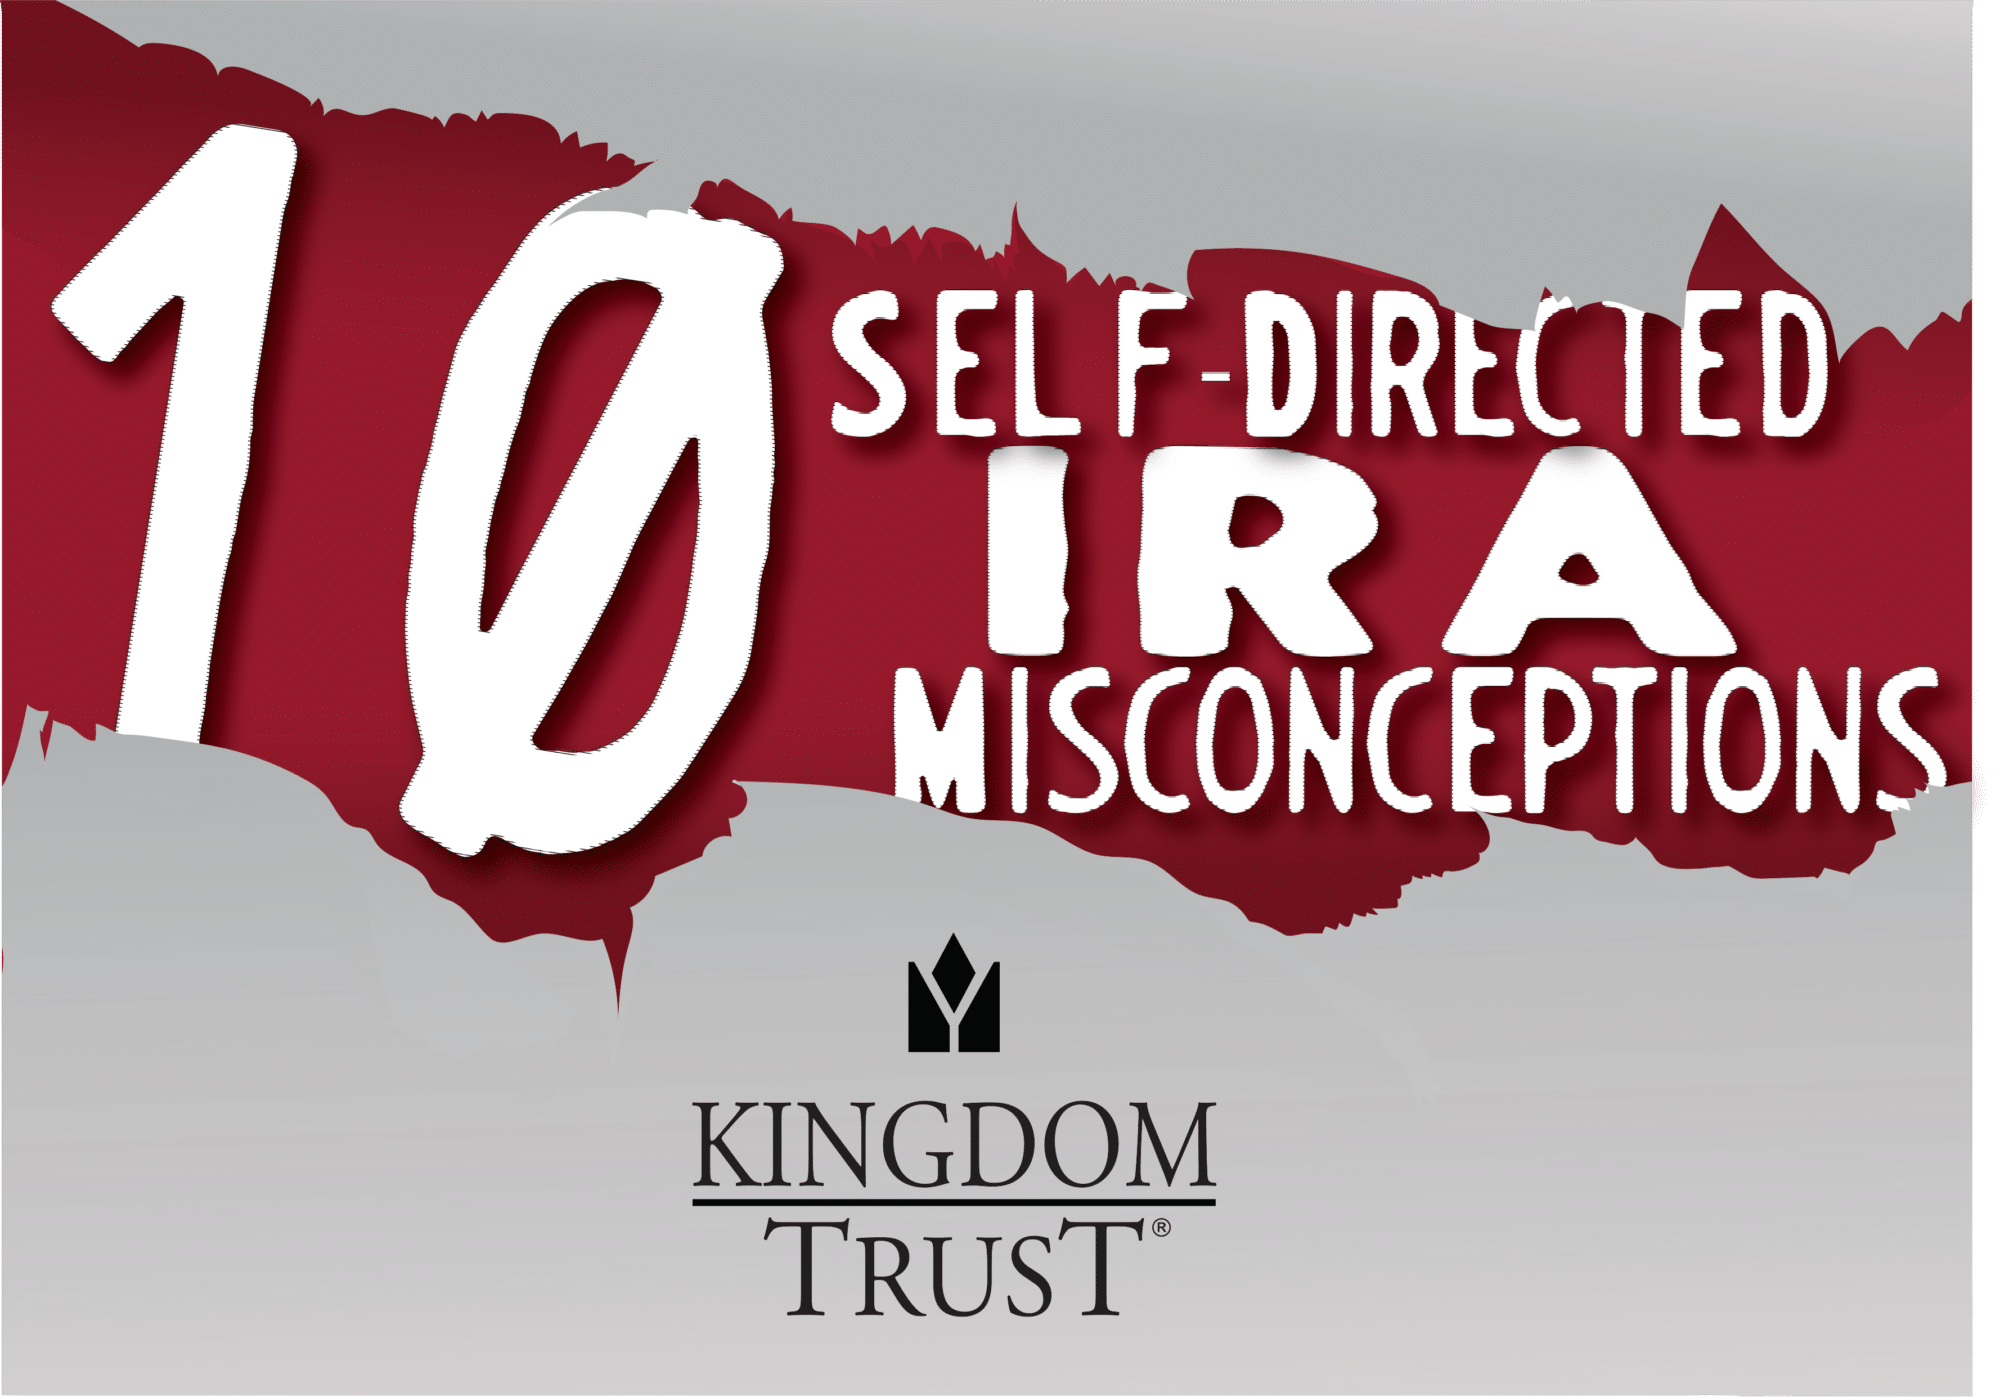 10 Self-Directed IRA Misconceptions